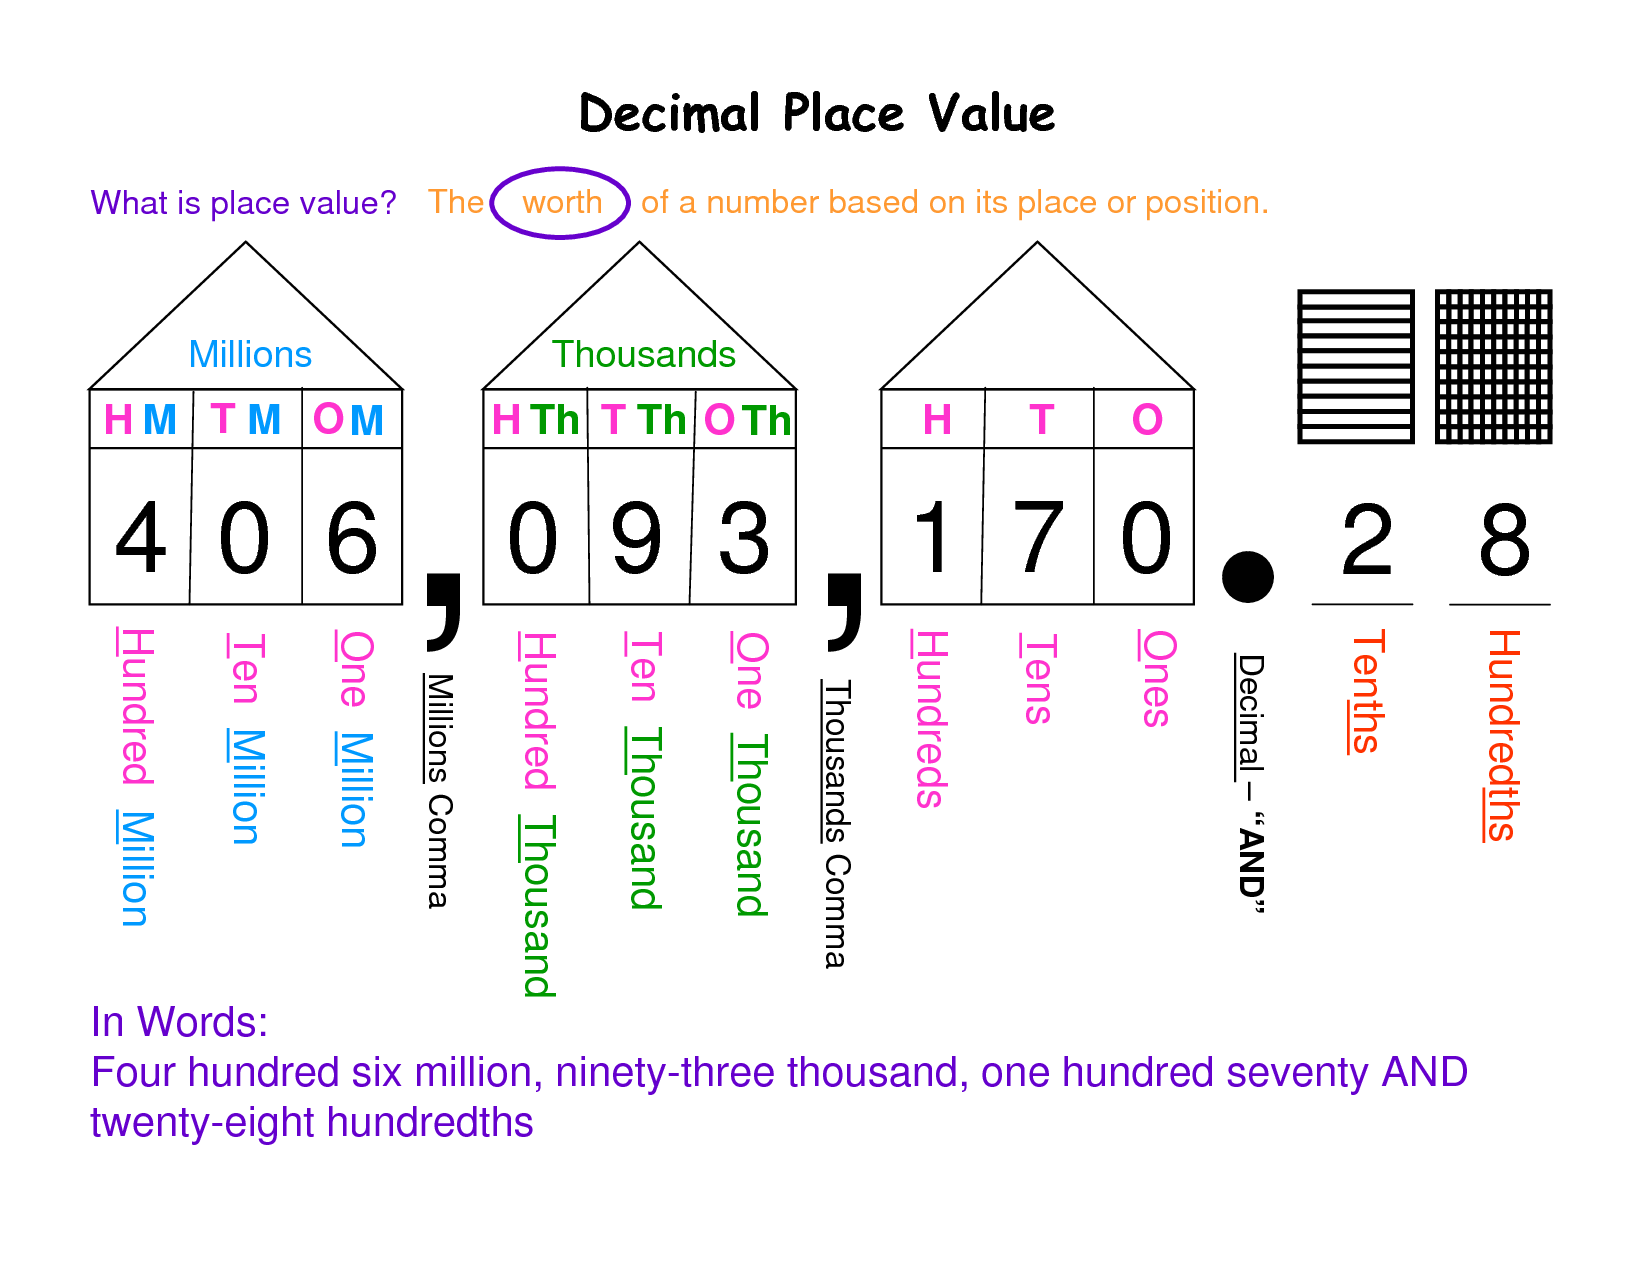 Place value png transparent place valueg images pluspng full size decimal place value chart google image result for httpimg nvjuhfo Gallery